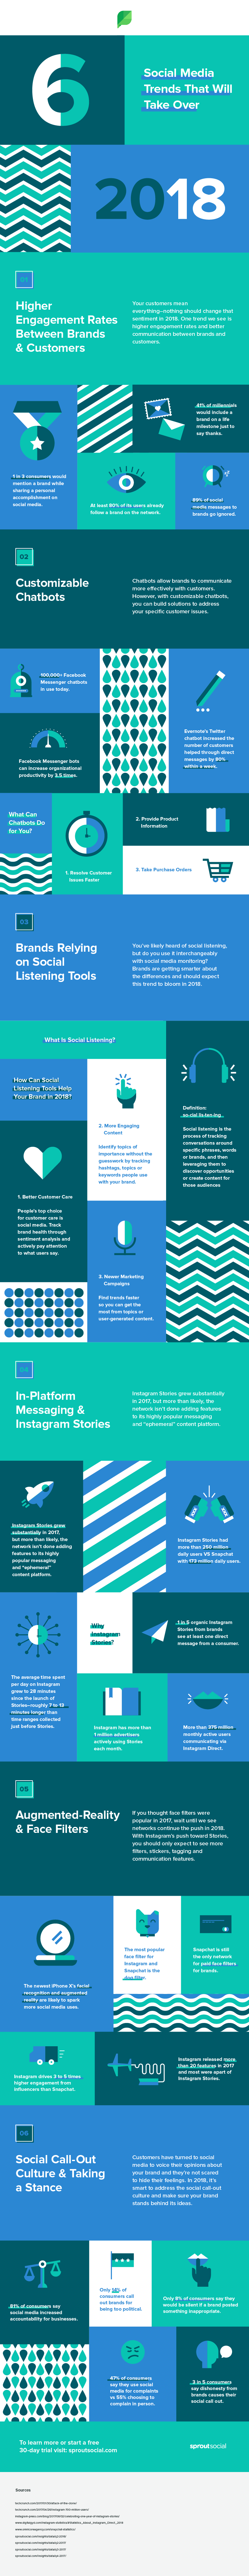 6 Social Media Trends That Will Take Over 2018 - infographic